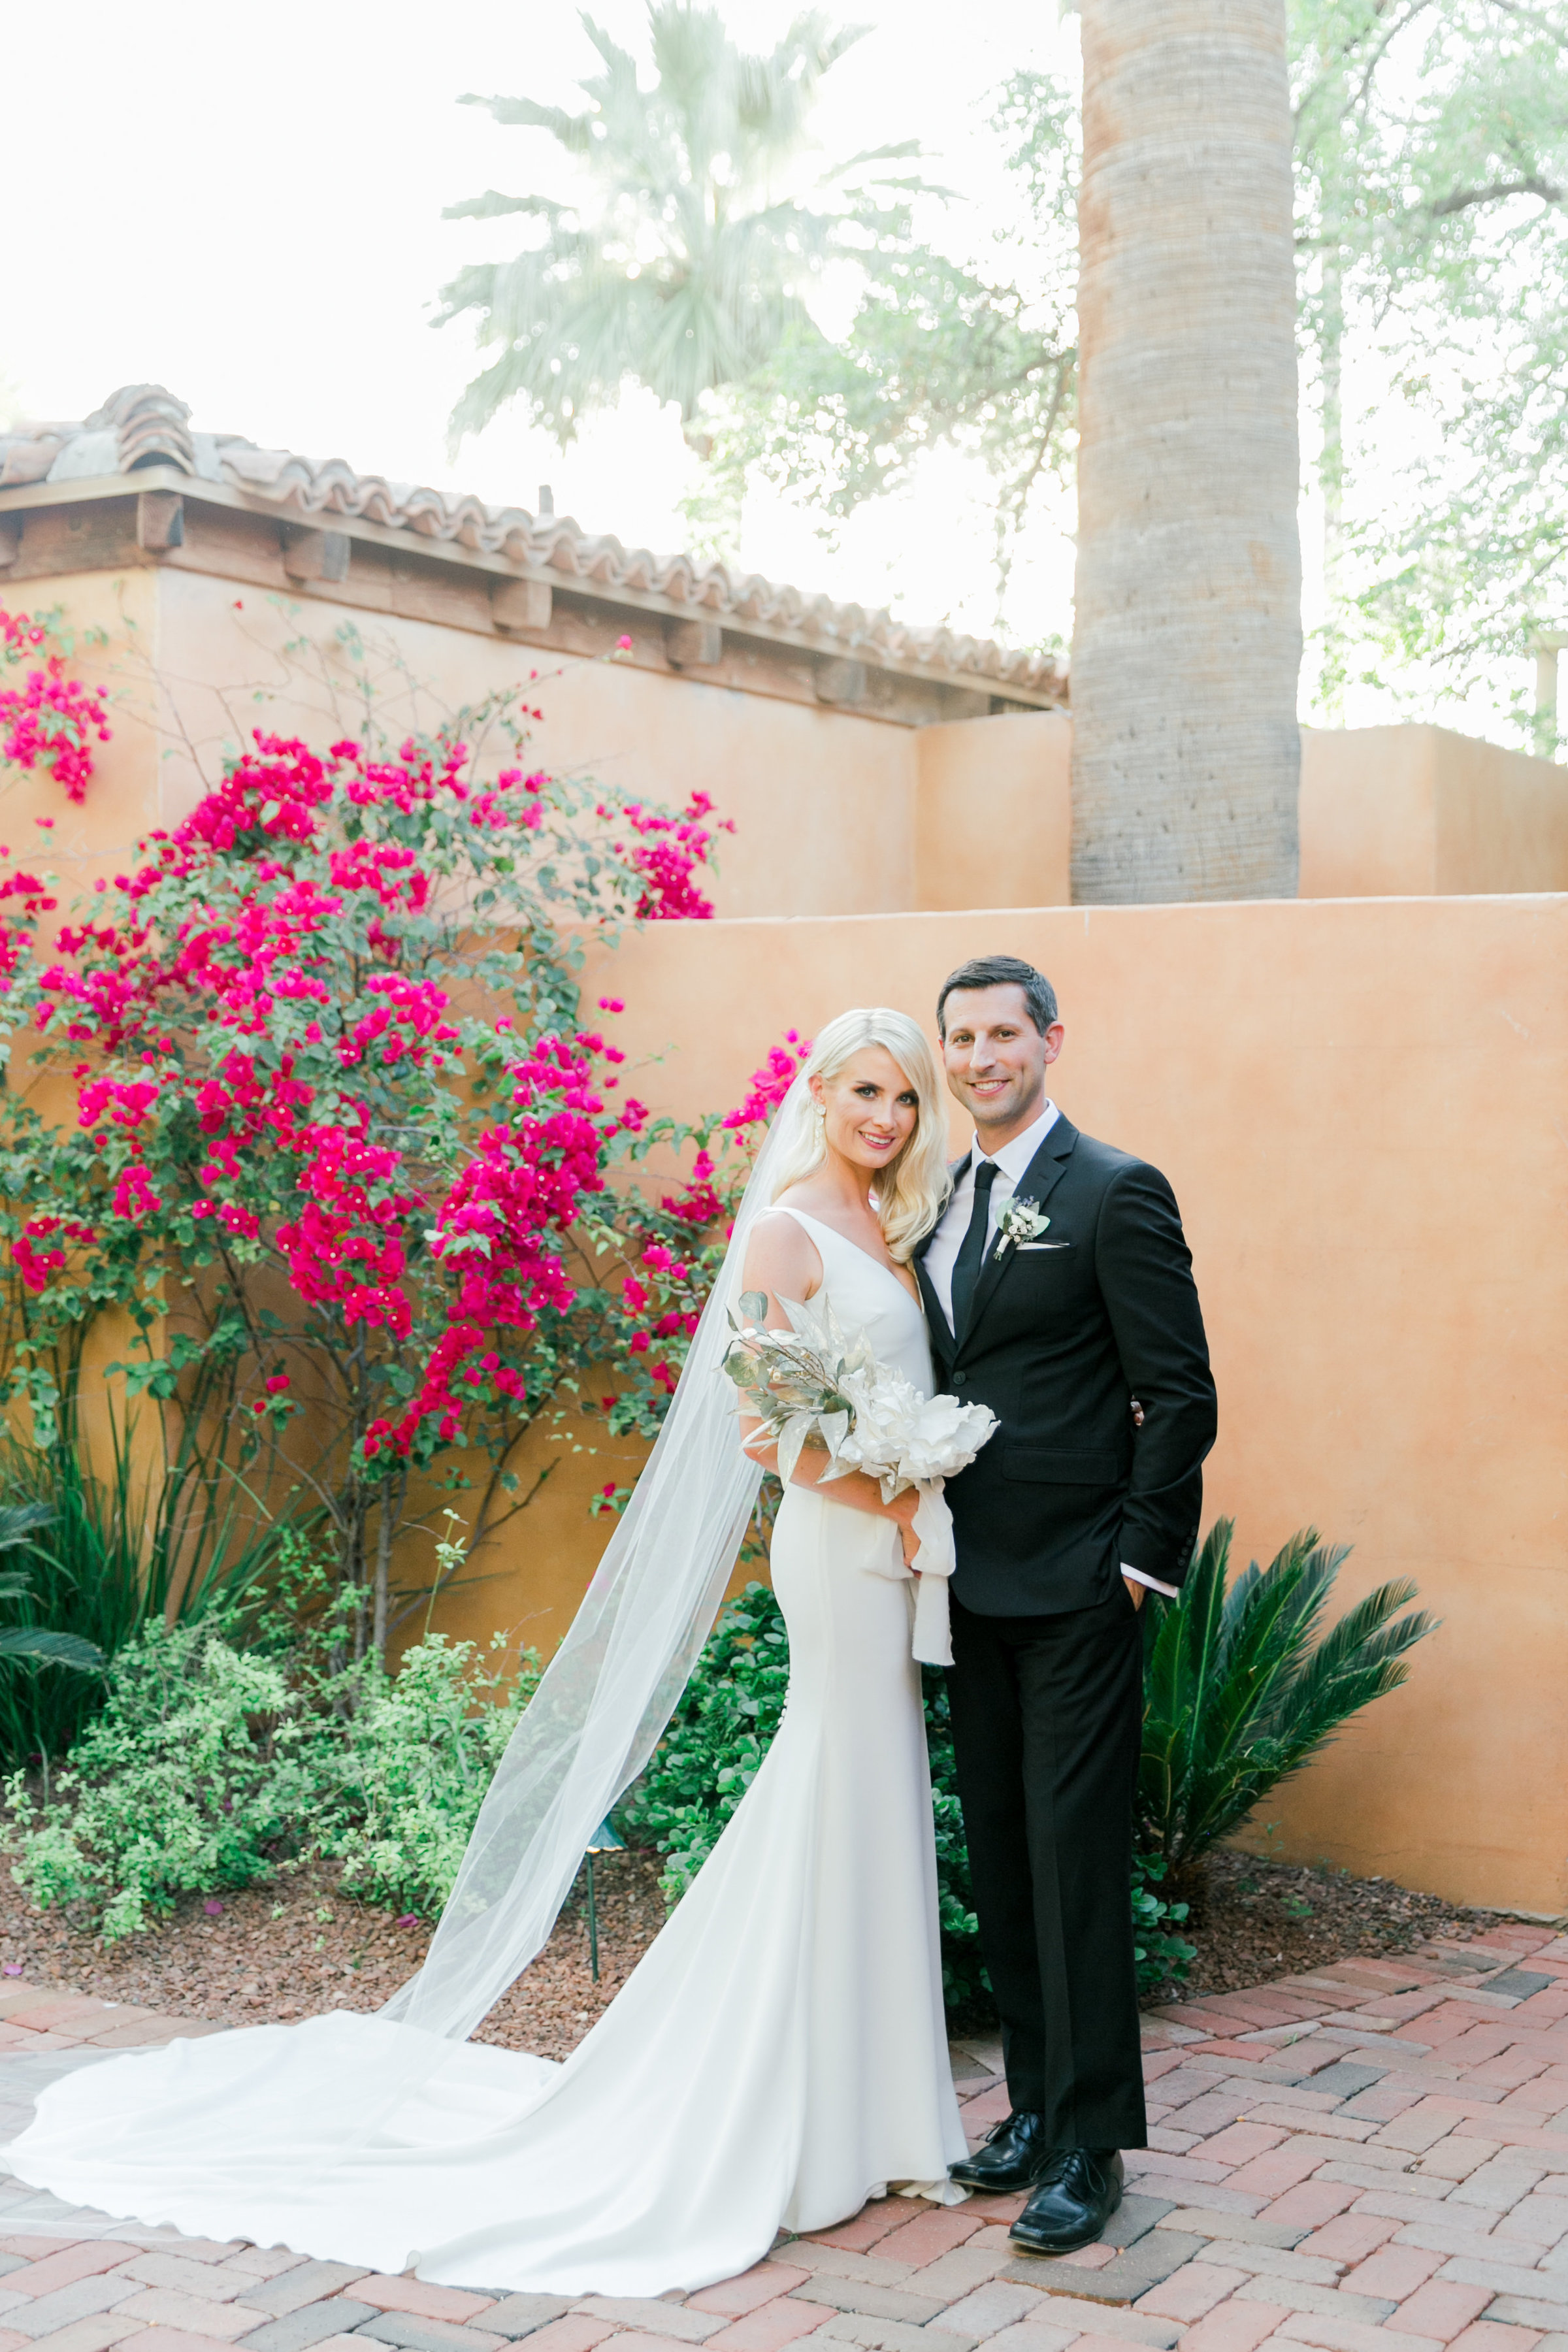 Karlie Colleen Photography - Arizona Wedding - Royal Palms Resort- Alex & Alex-109